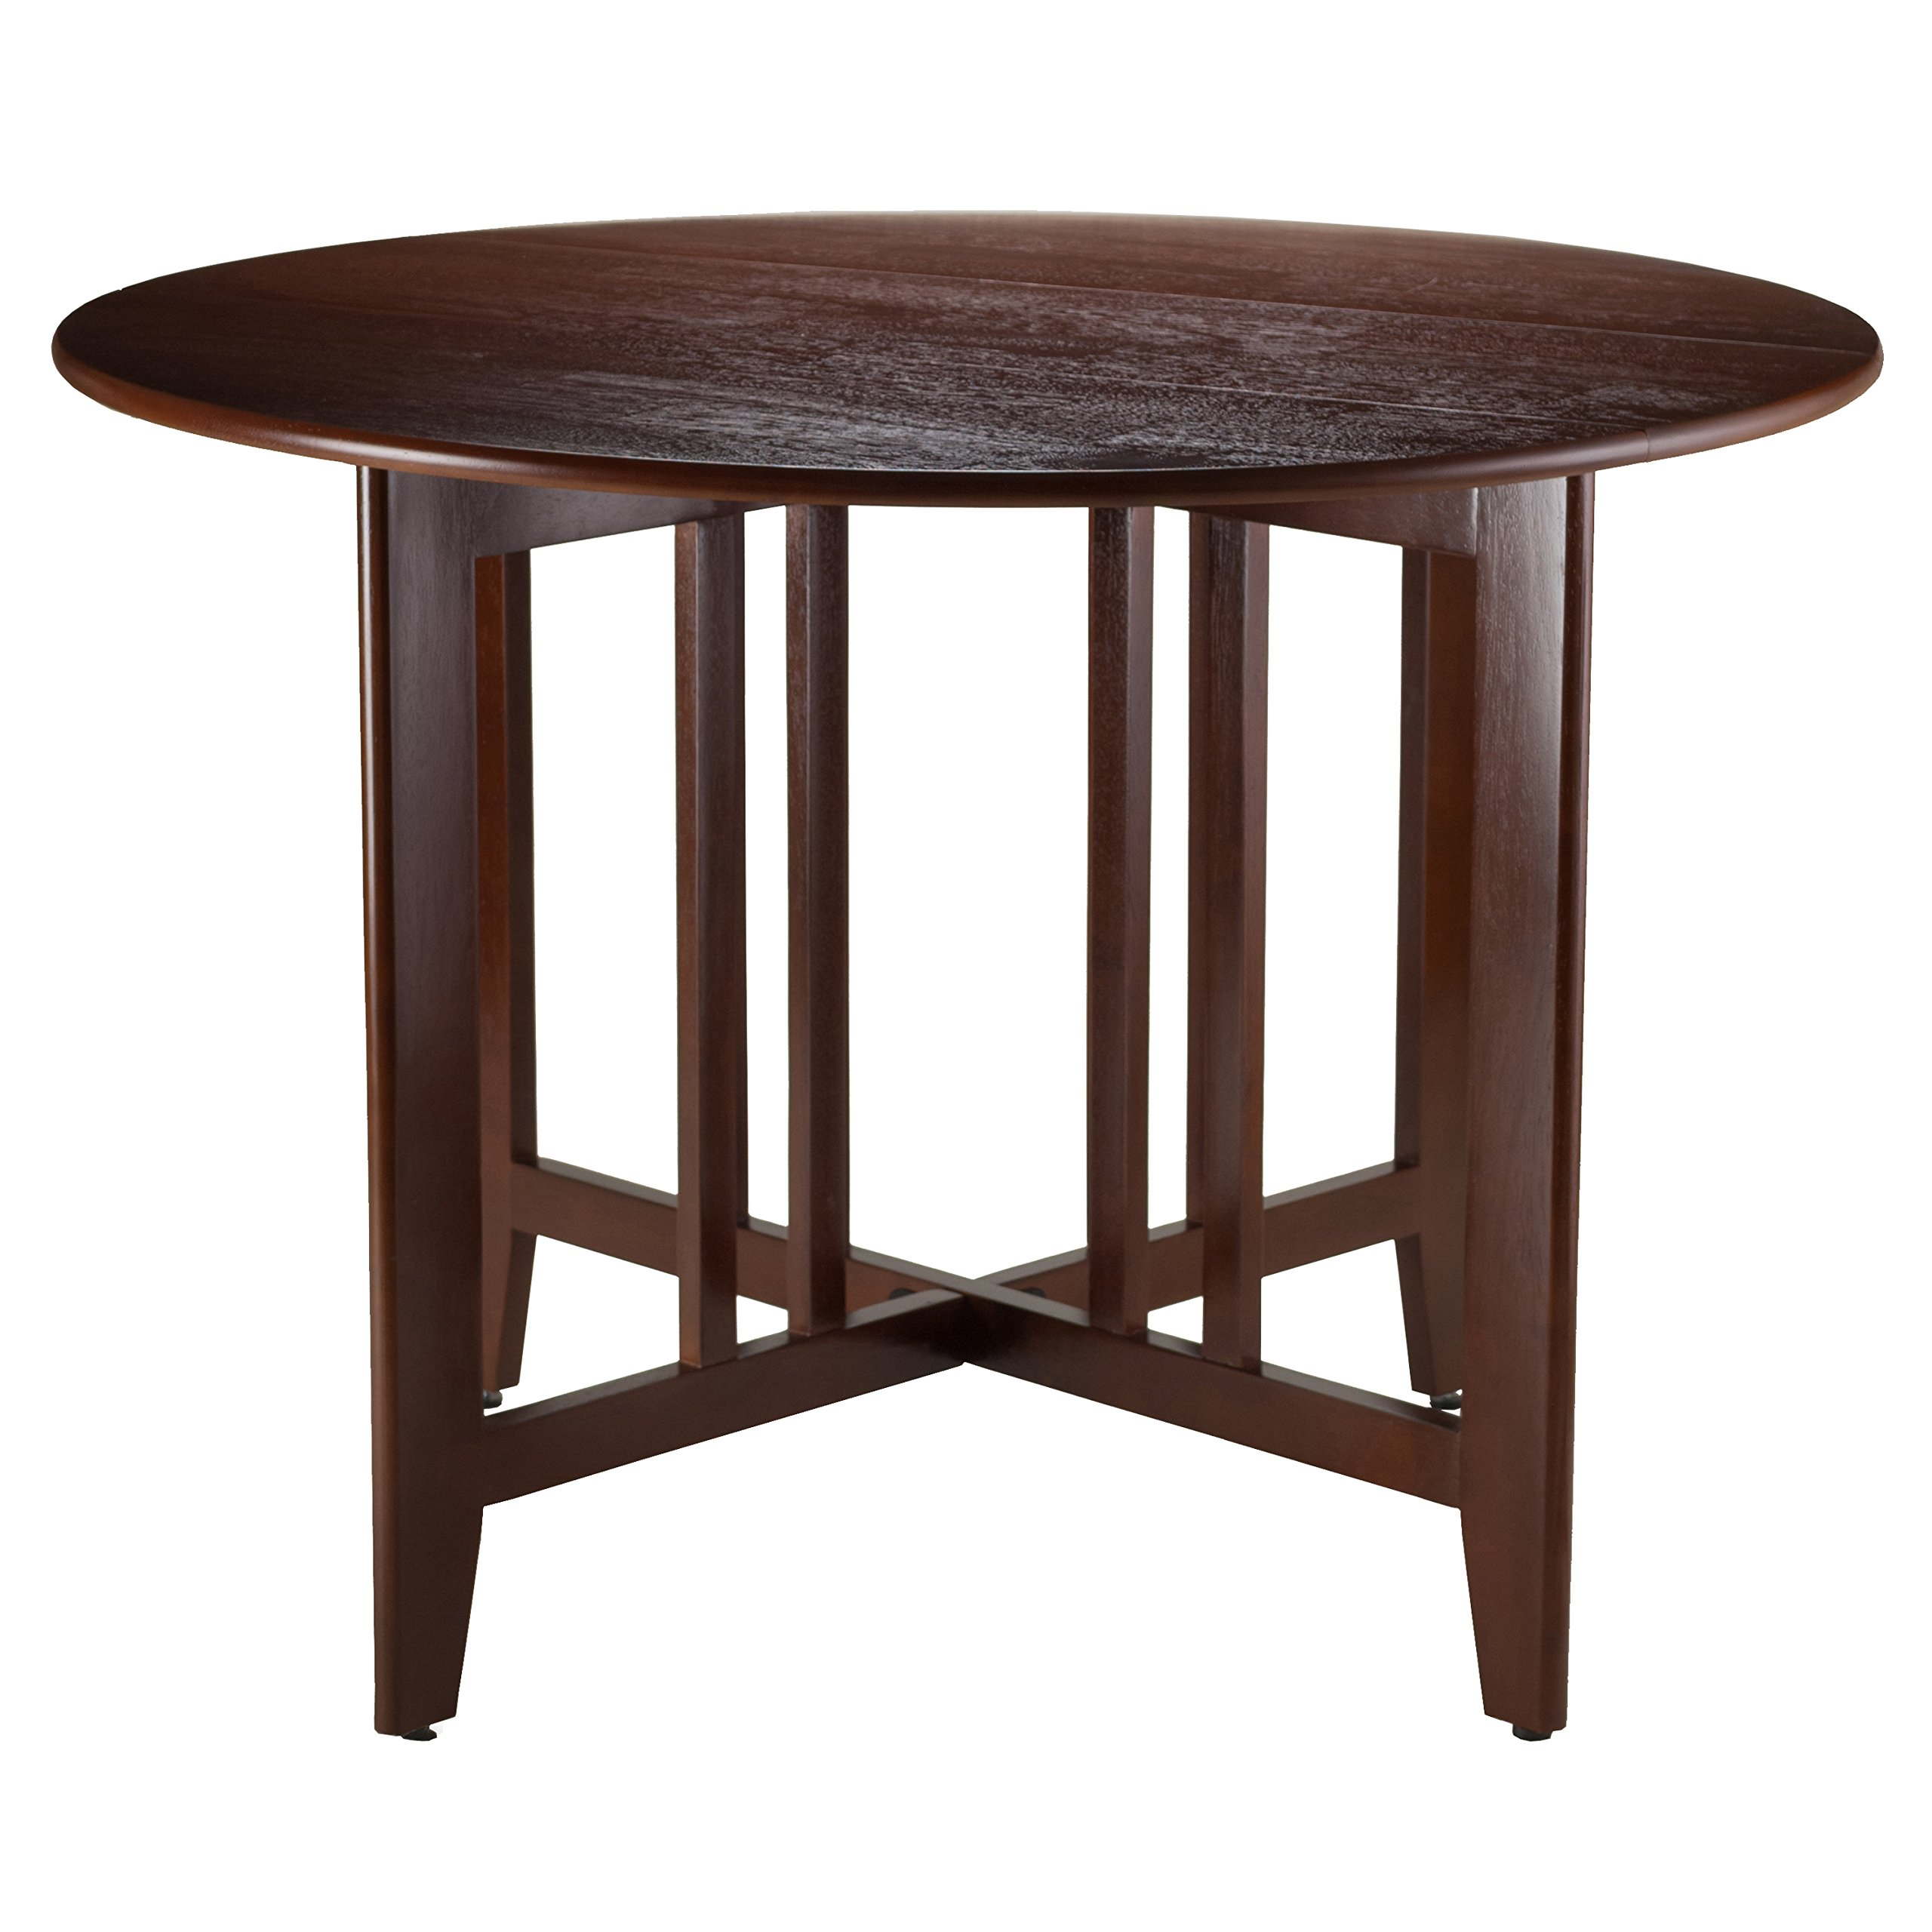 drop leaf dining table walnut round solid wood 42 antique kitchen furniture 615517455191 ebay. Black Bedroom Furniture Sets. Home Design Ideas